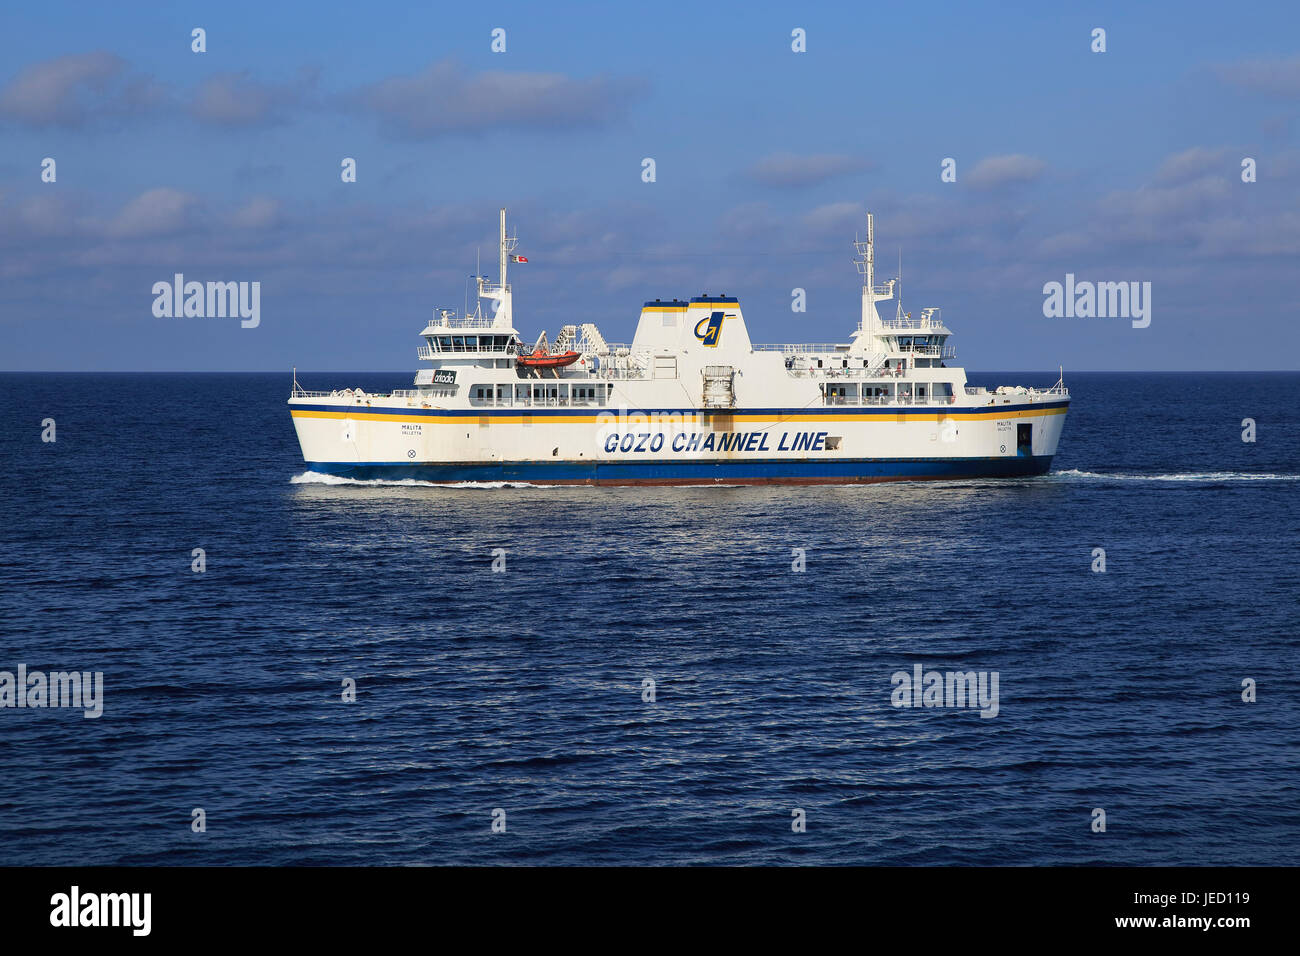 Gozo Channel Line ferry ship crossing between islands of Malta and Gozo - Stock Image